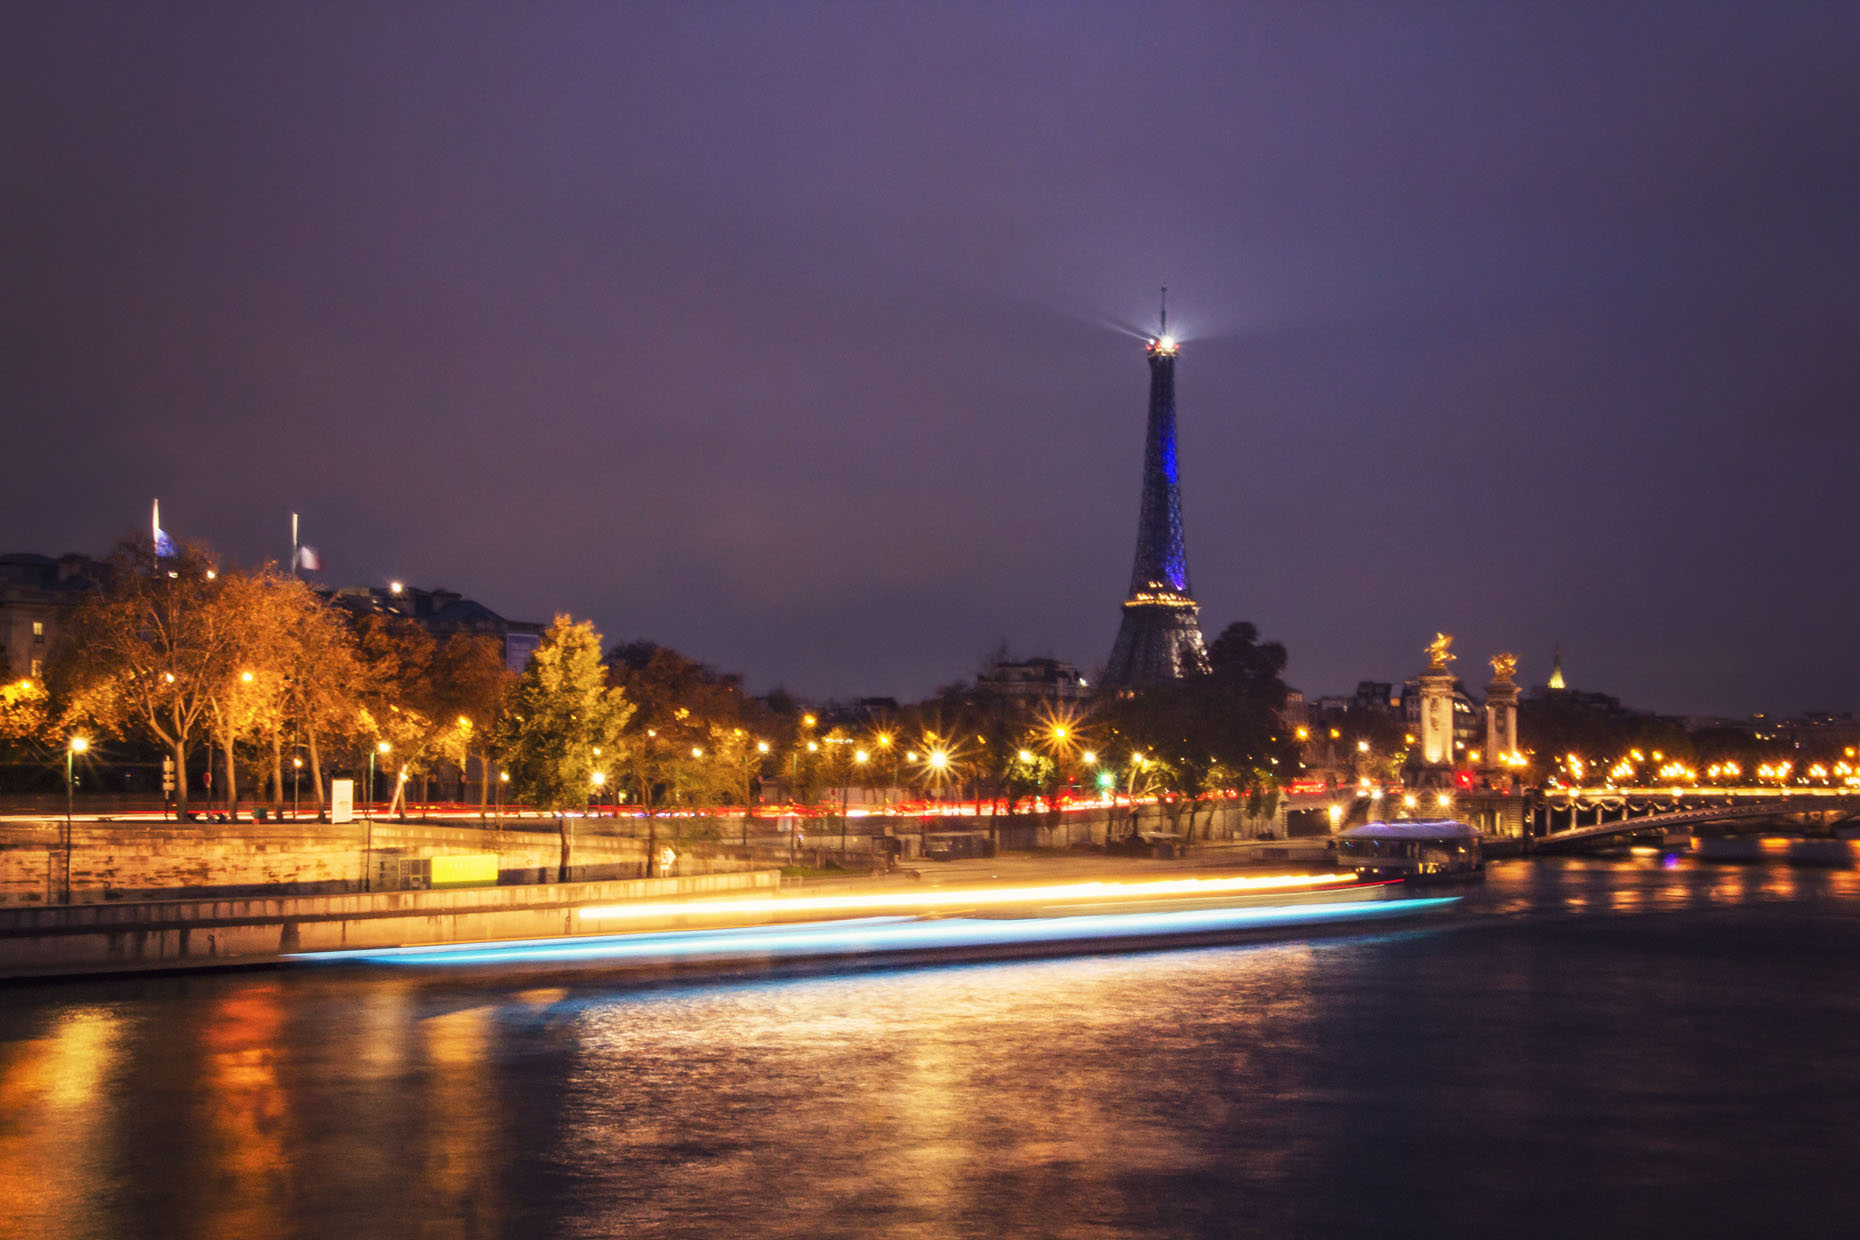 France_Paris_IMG_3606-e_webuse.jpg